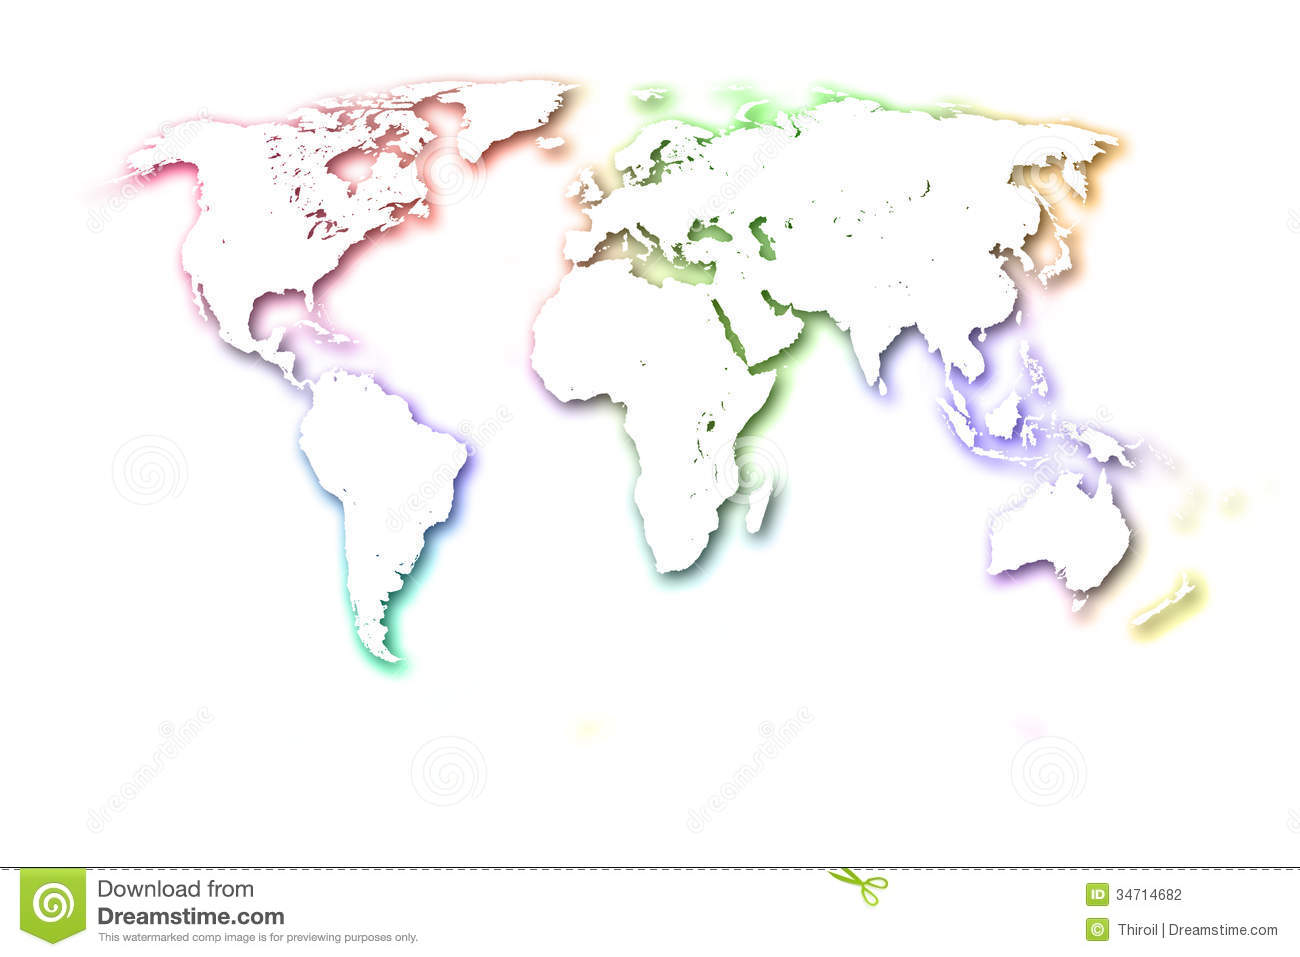 World map white background idealstalist world map white background gumiabroncs Gallery